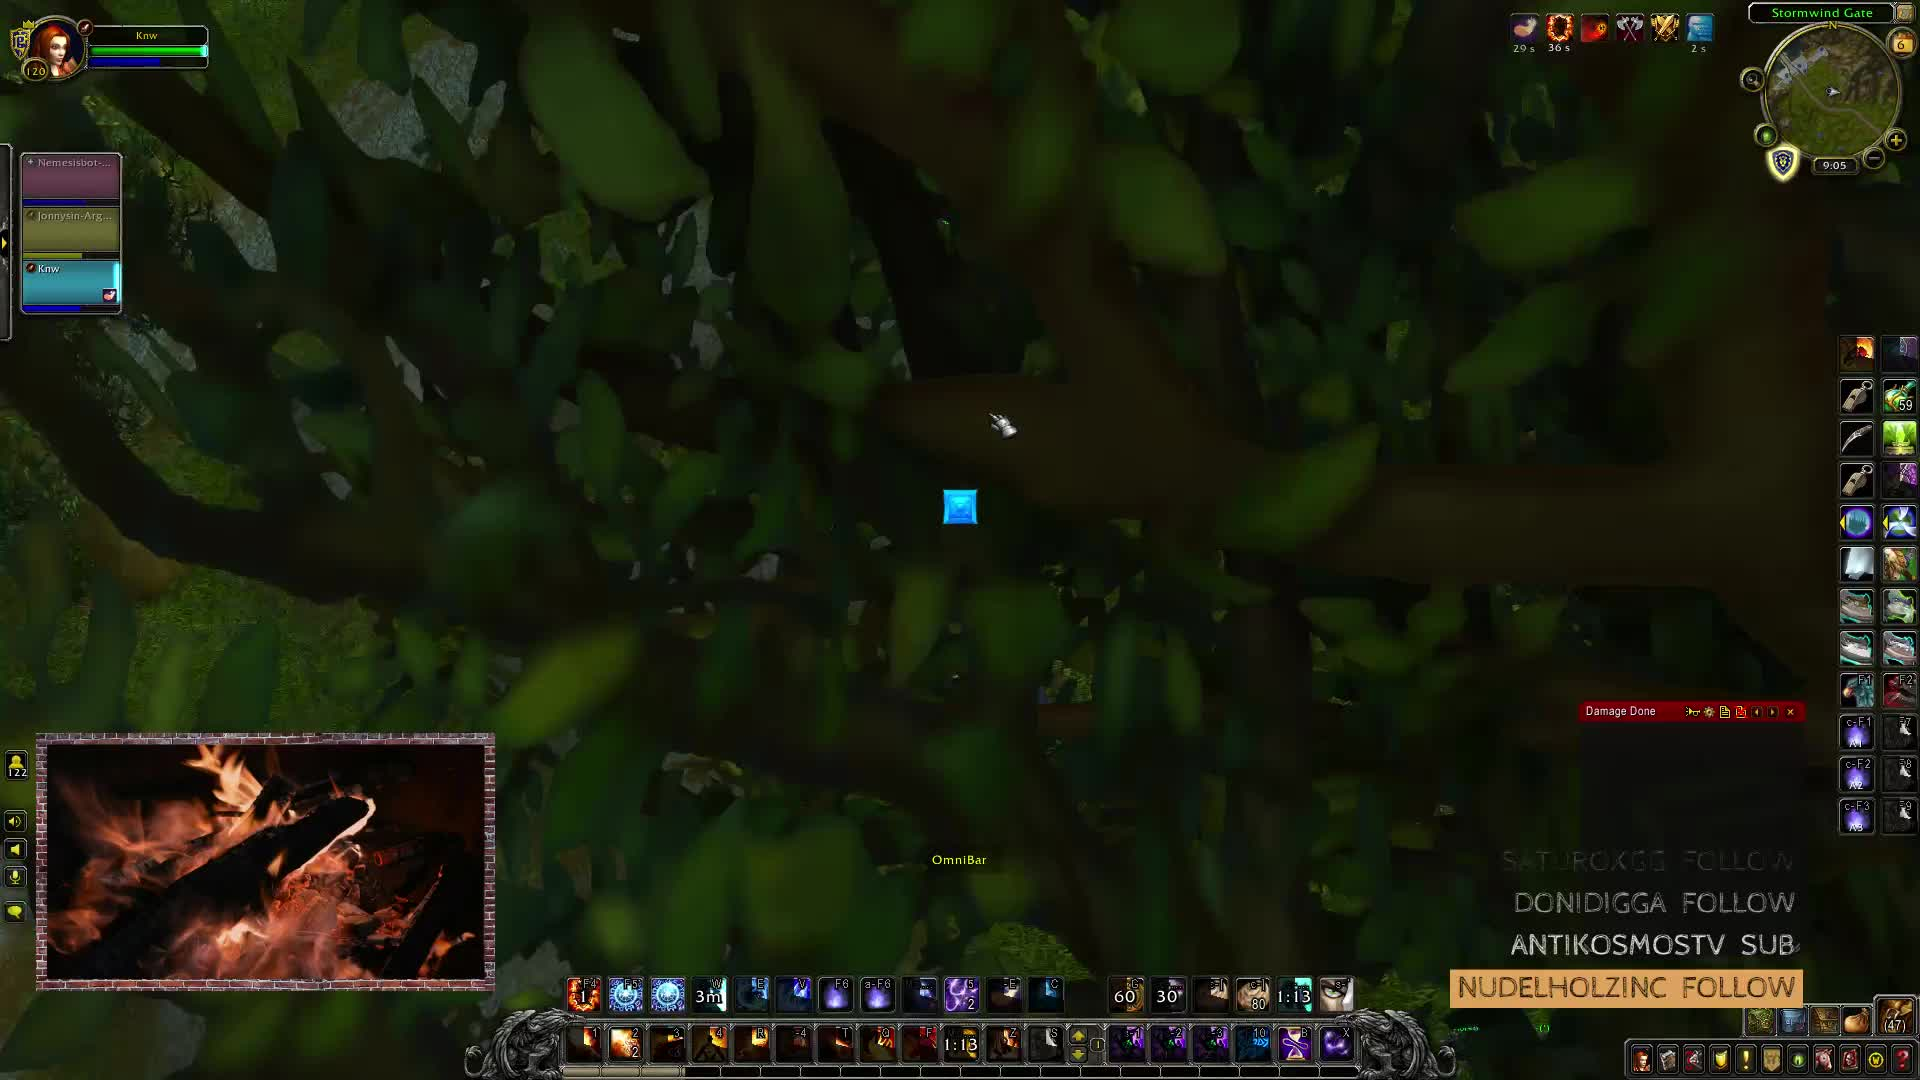 KingKNW - Multi Glad Fire Mage - 2 6kcr+ fire mage - Twitch